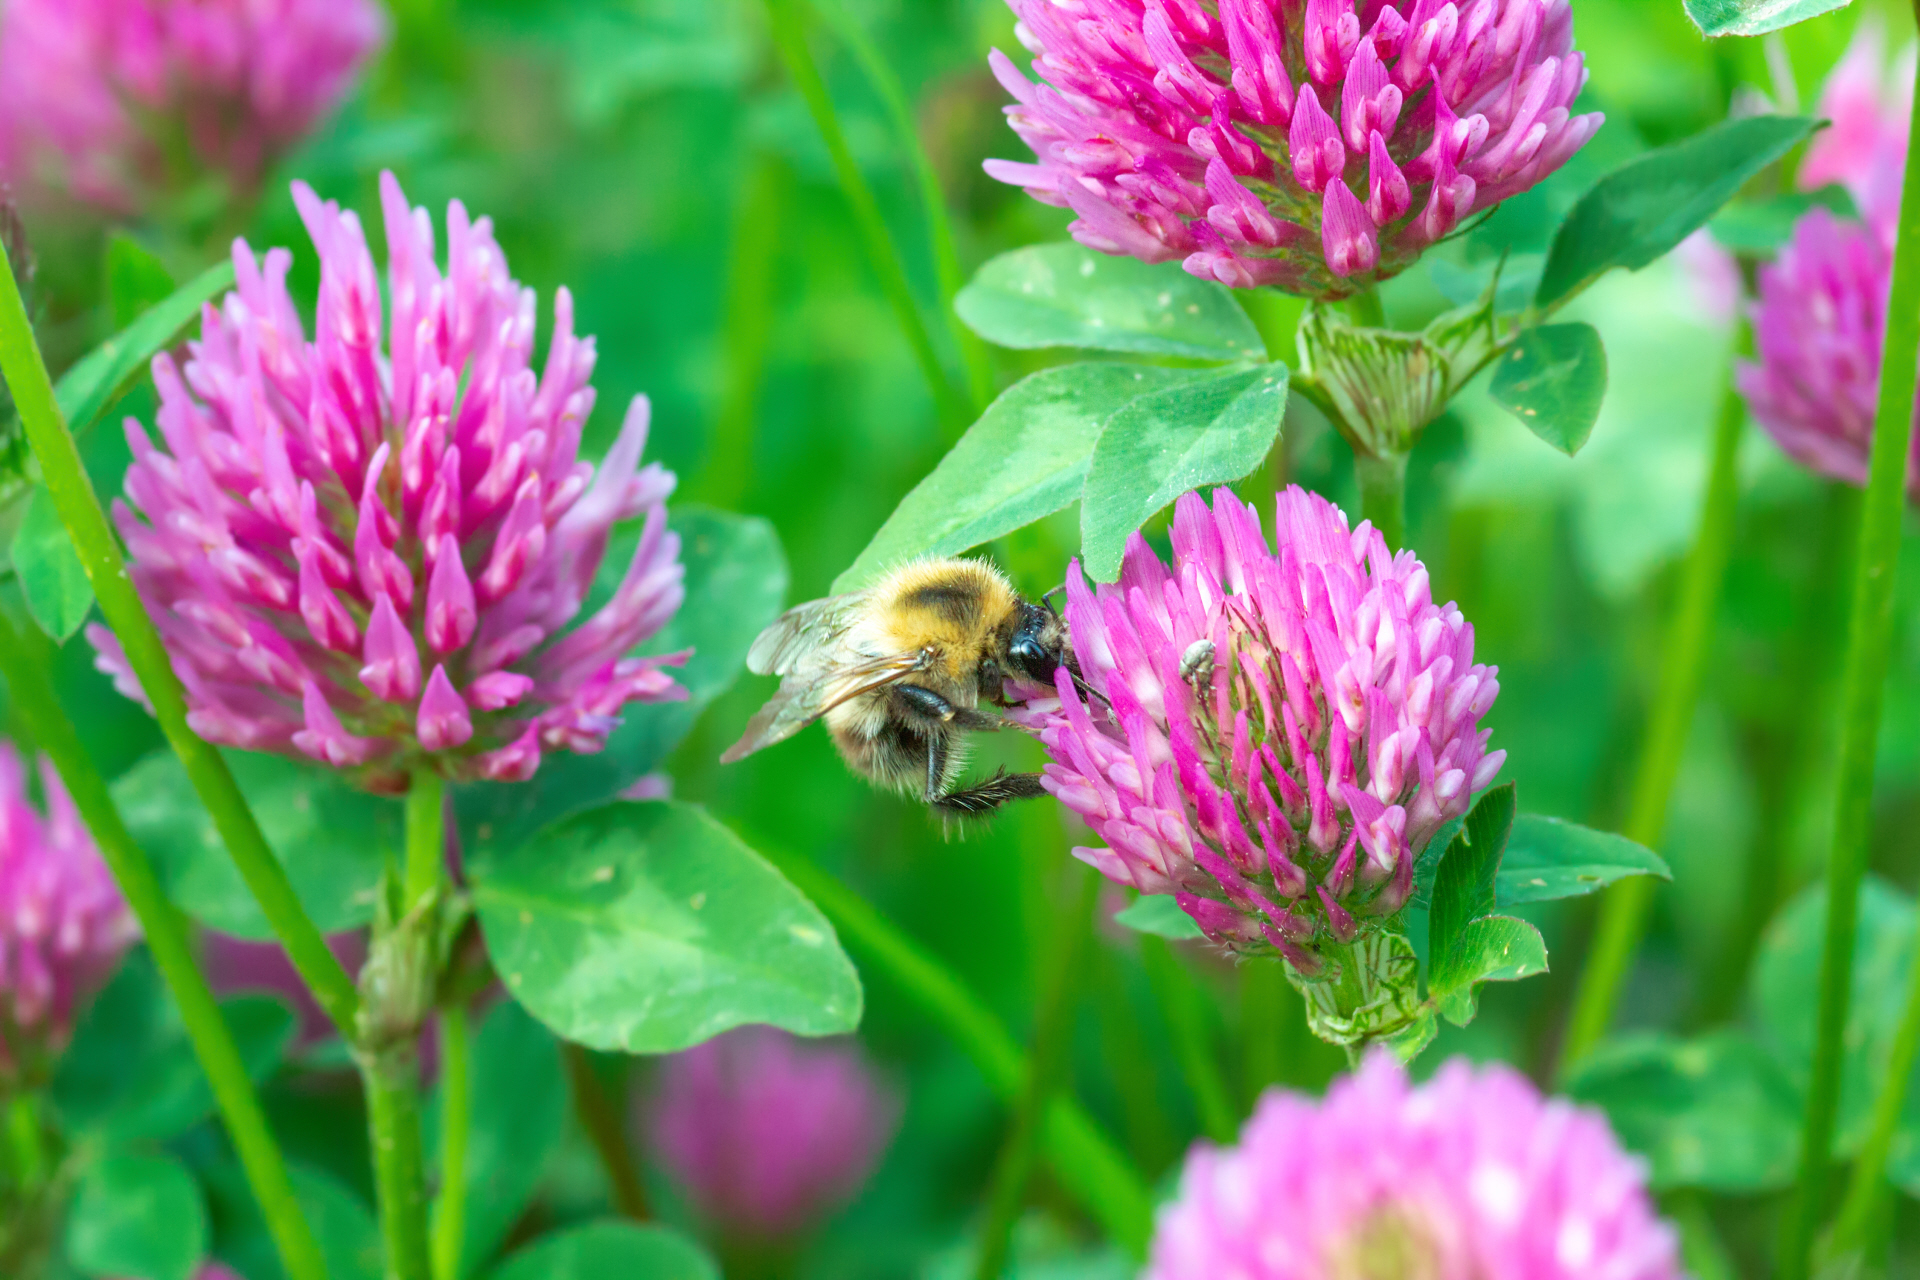 How to Attract Bees this Spring